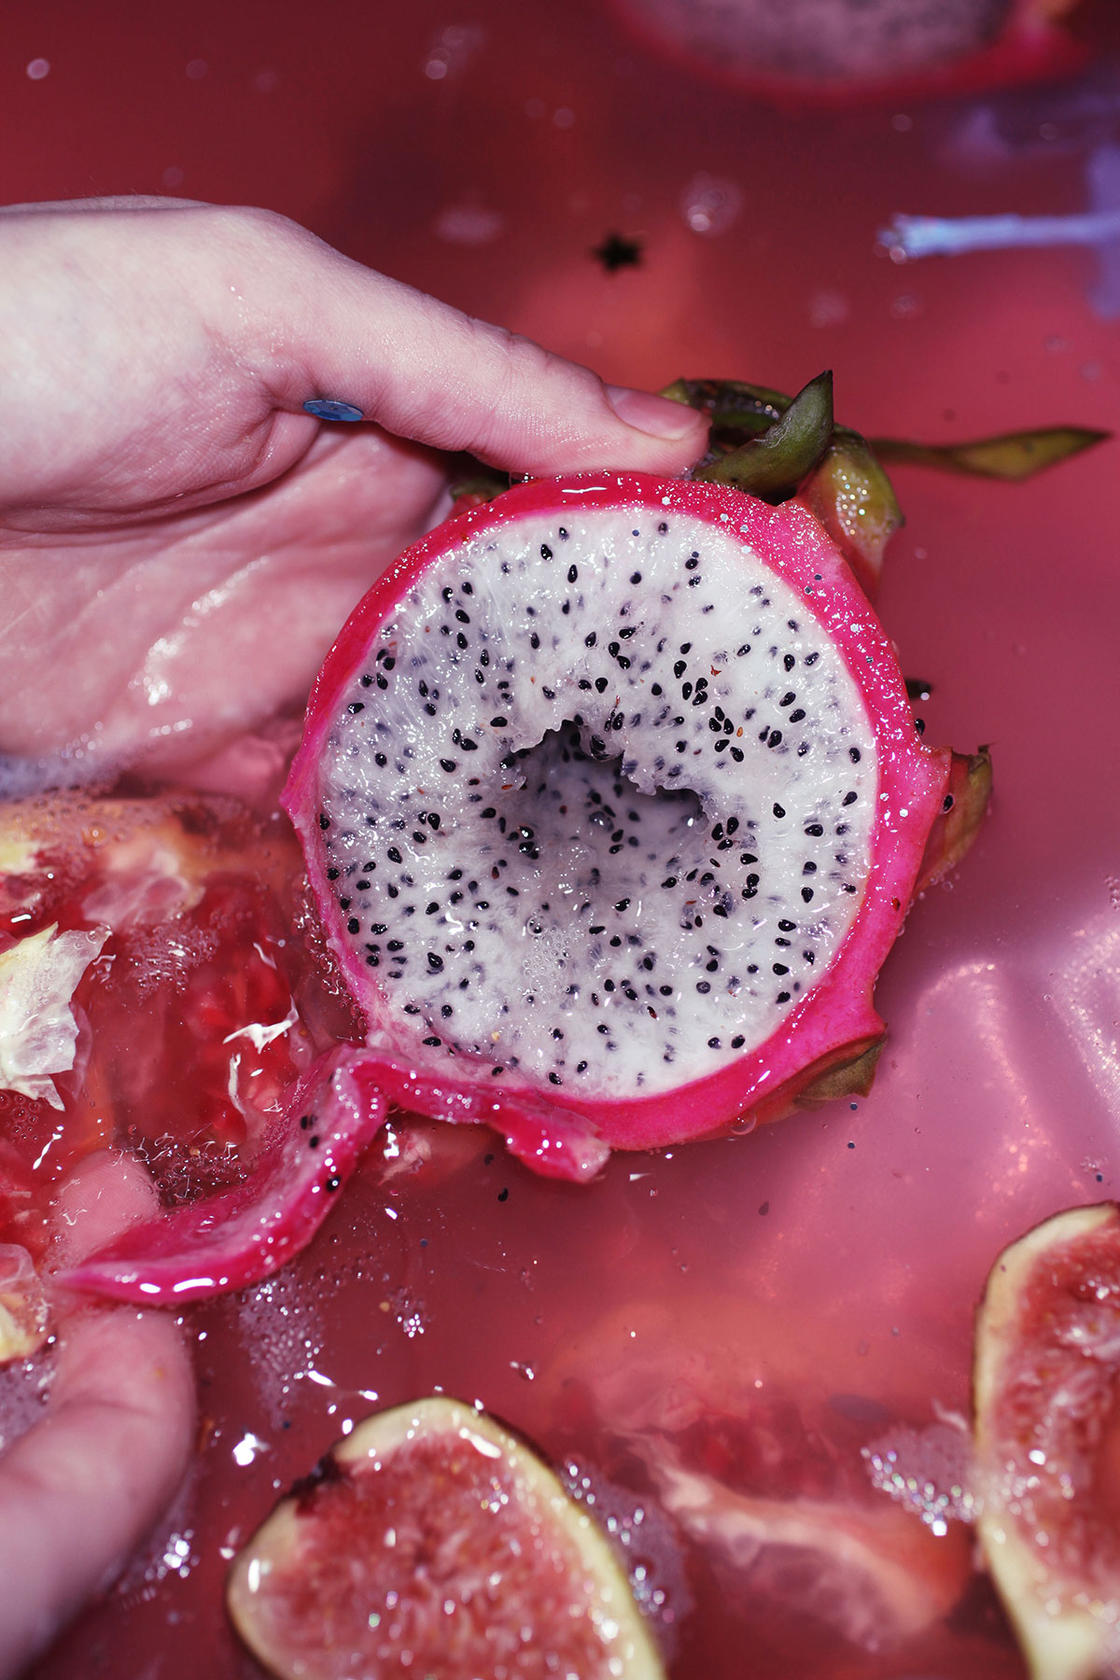 The organic and ultra-colorful photographs of Maisie Cousins